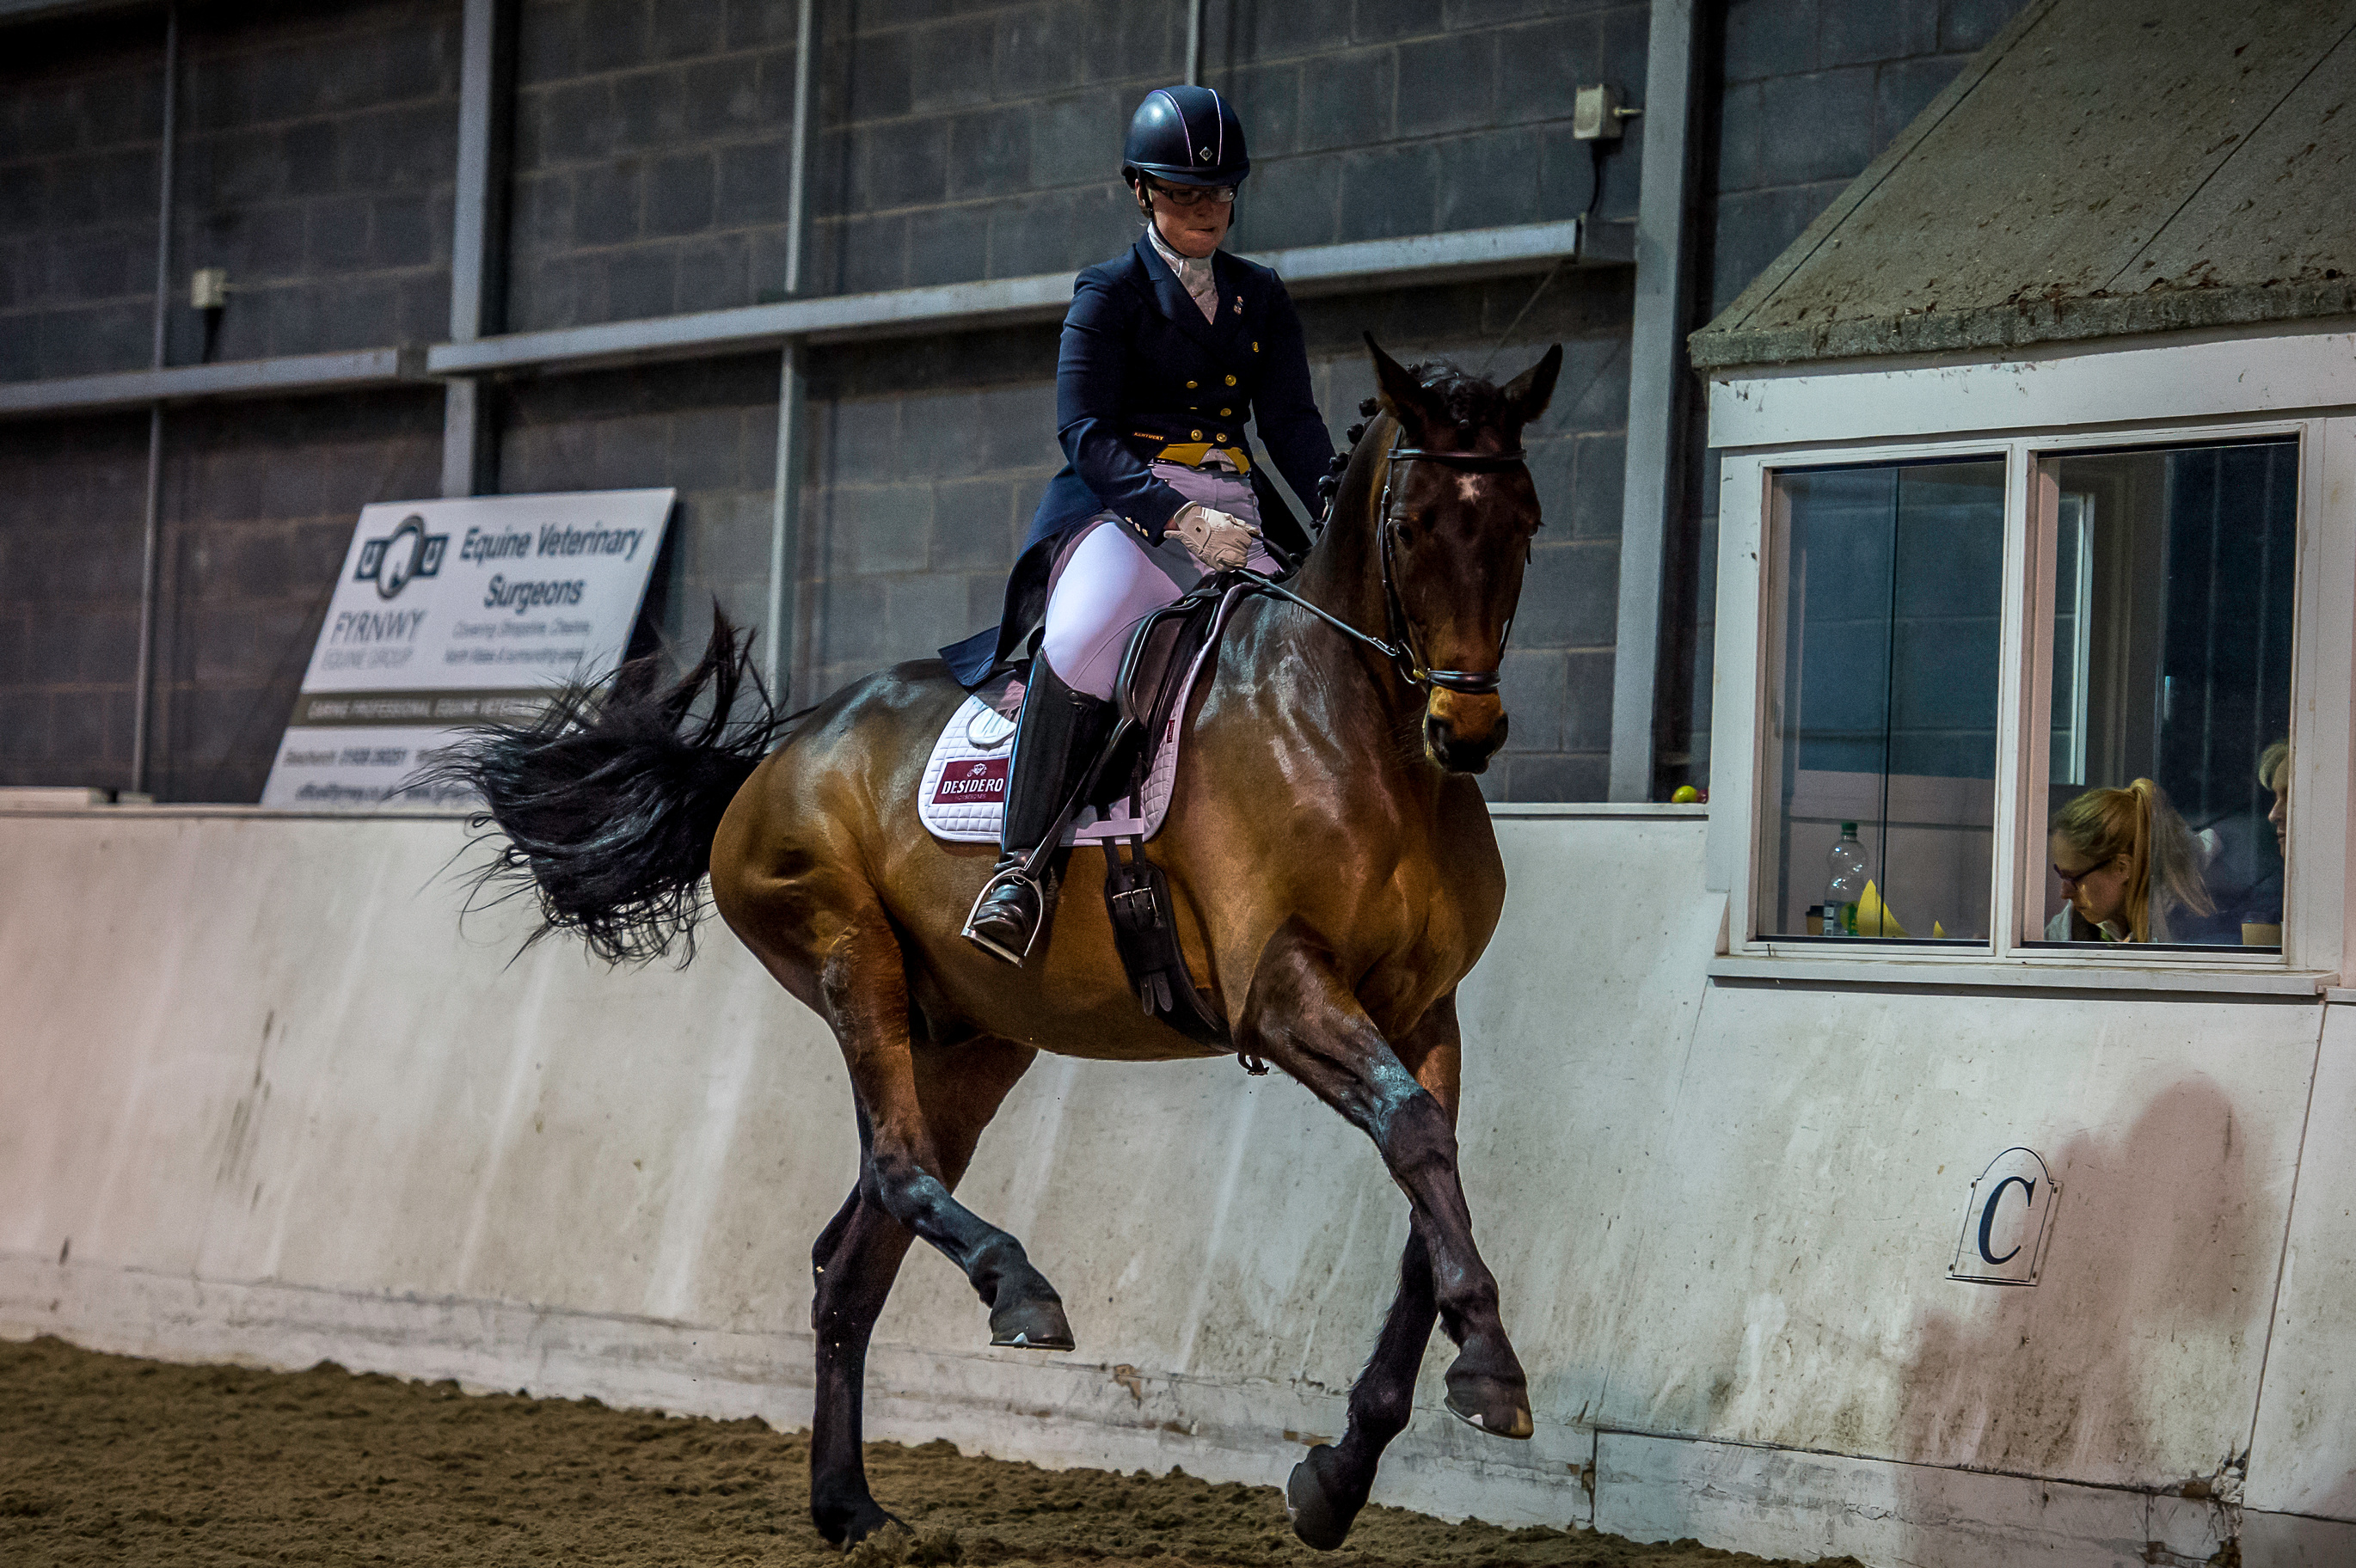 Charlotte Thomas - International Dressage Rider